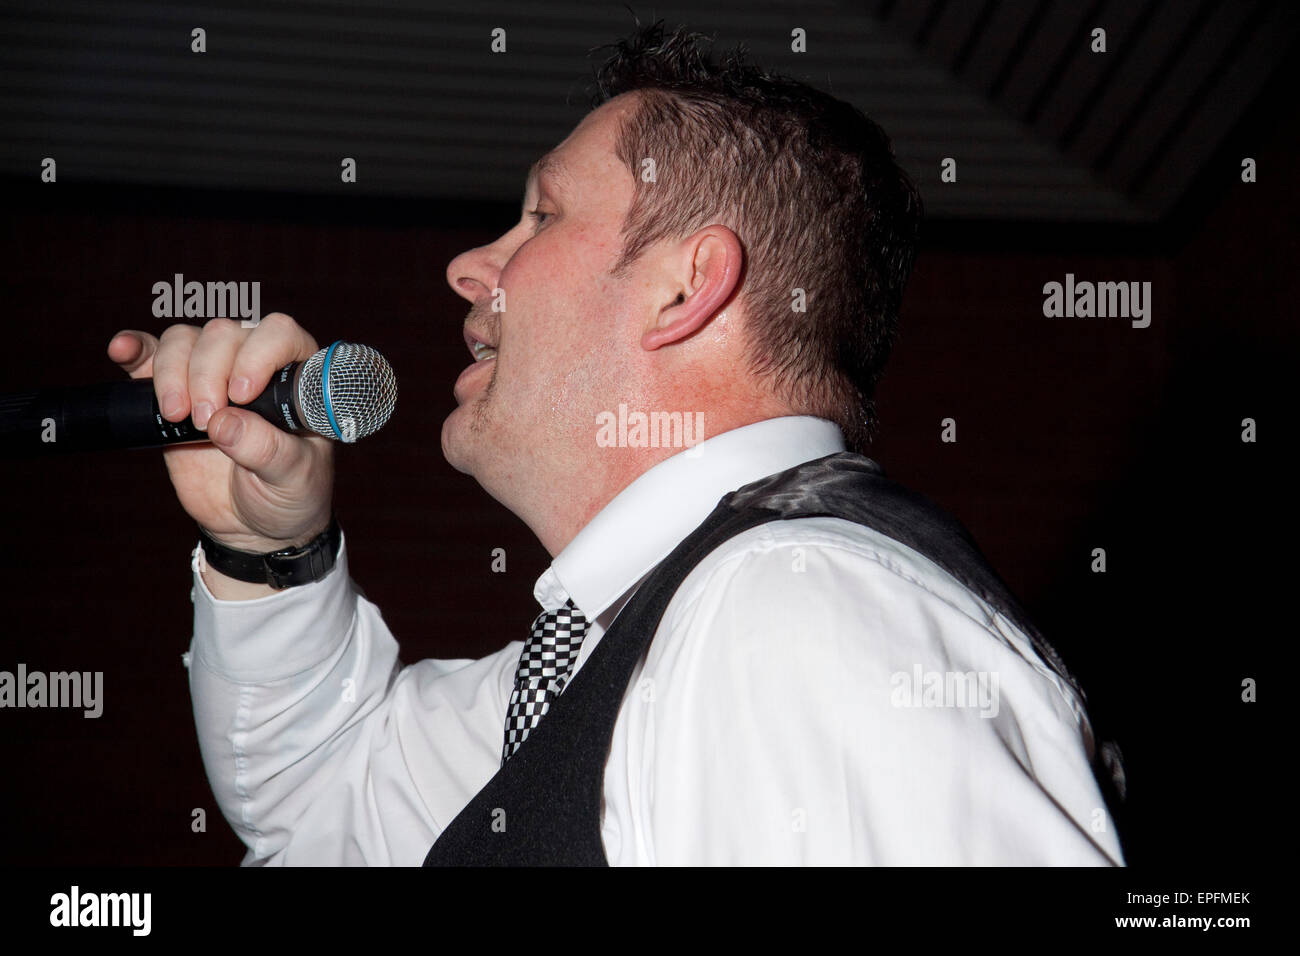 Man in white shirt, waistcoat, and black and white tie speaks/sings in to microphone - Stock Image